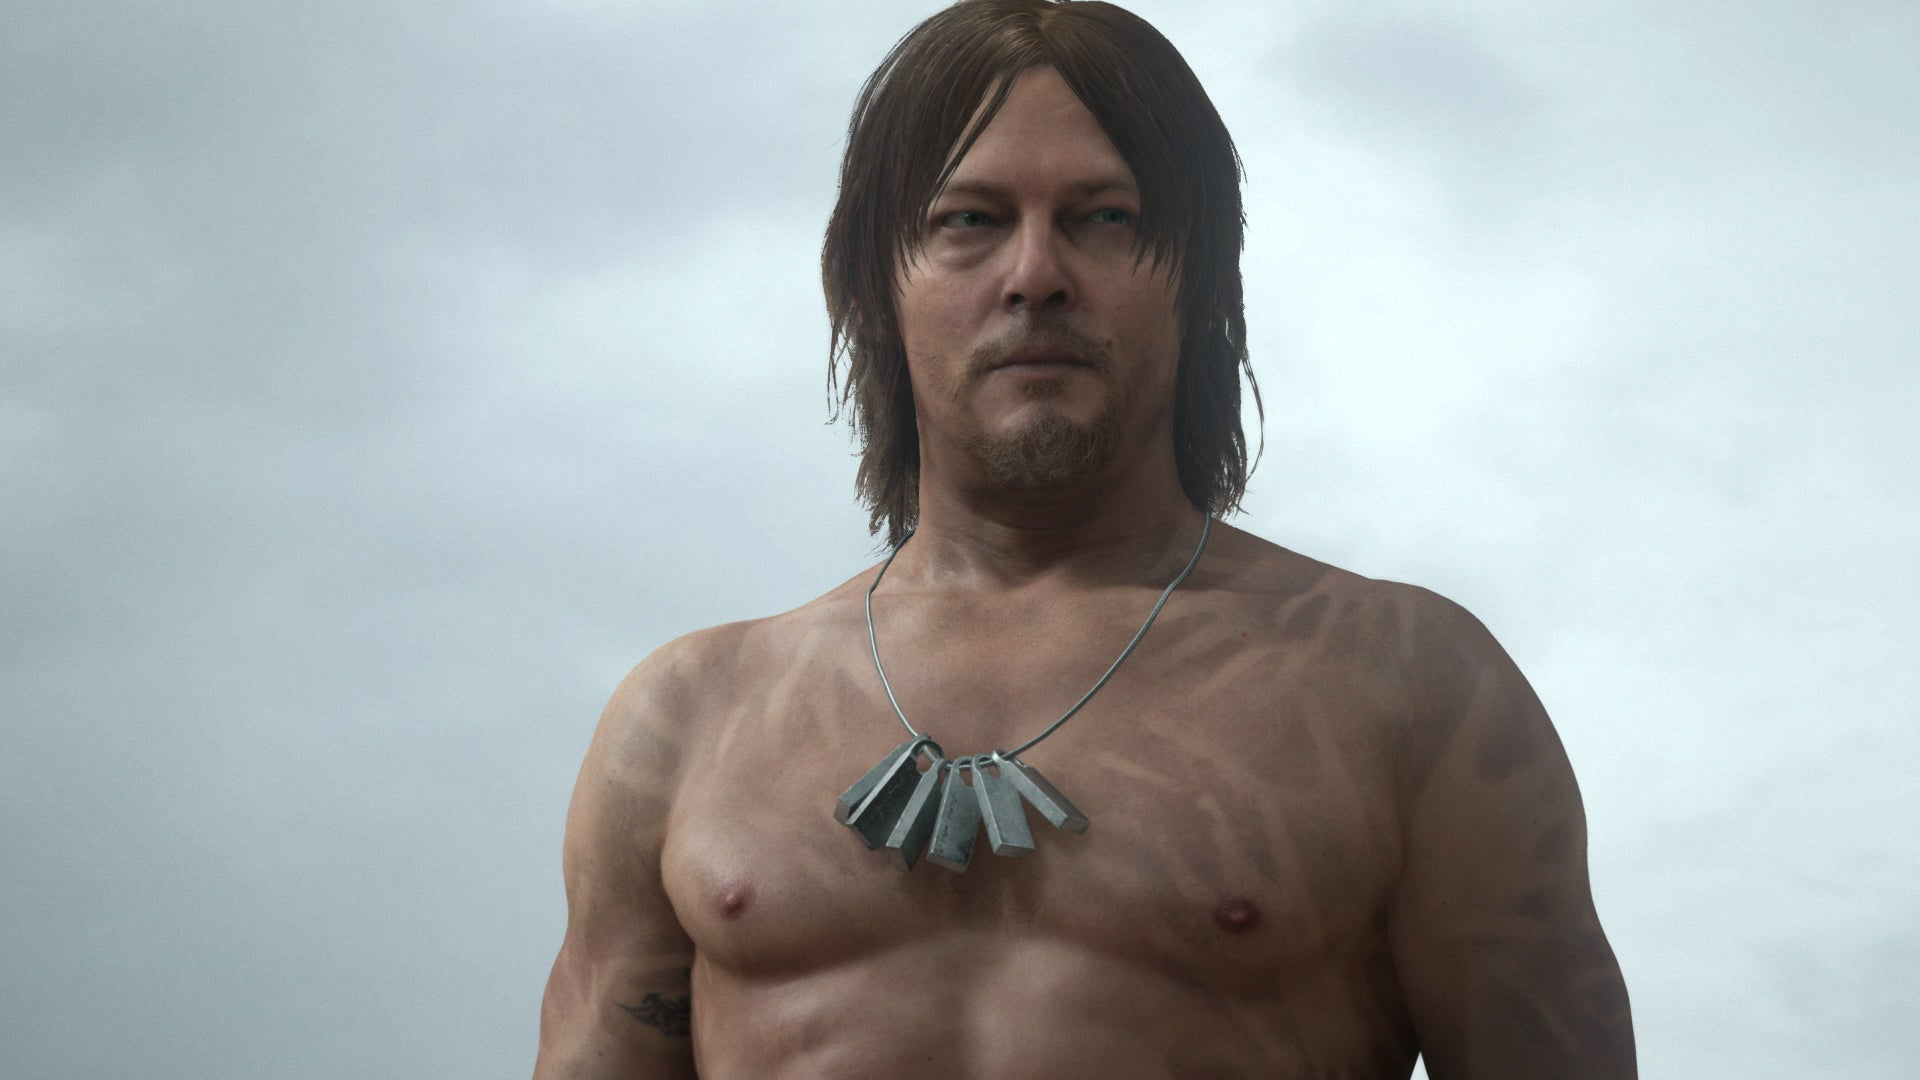 Upcoming Ps4 Games 2018 All The Top Exclusives On Way Trusted Wiring Diagram E83w Prior 1945 Death Stranding